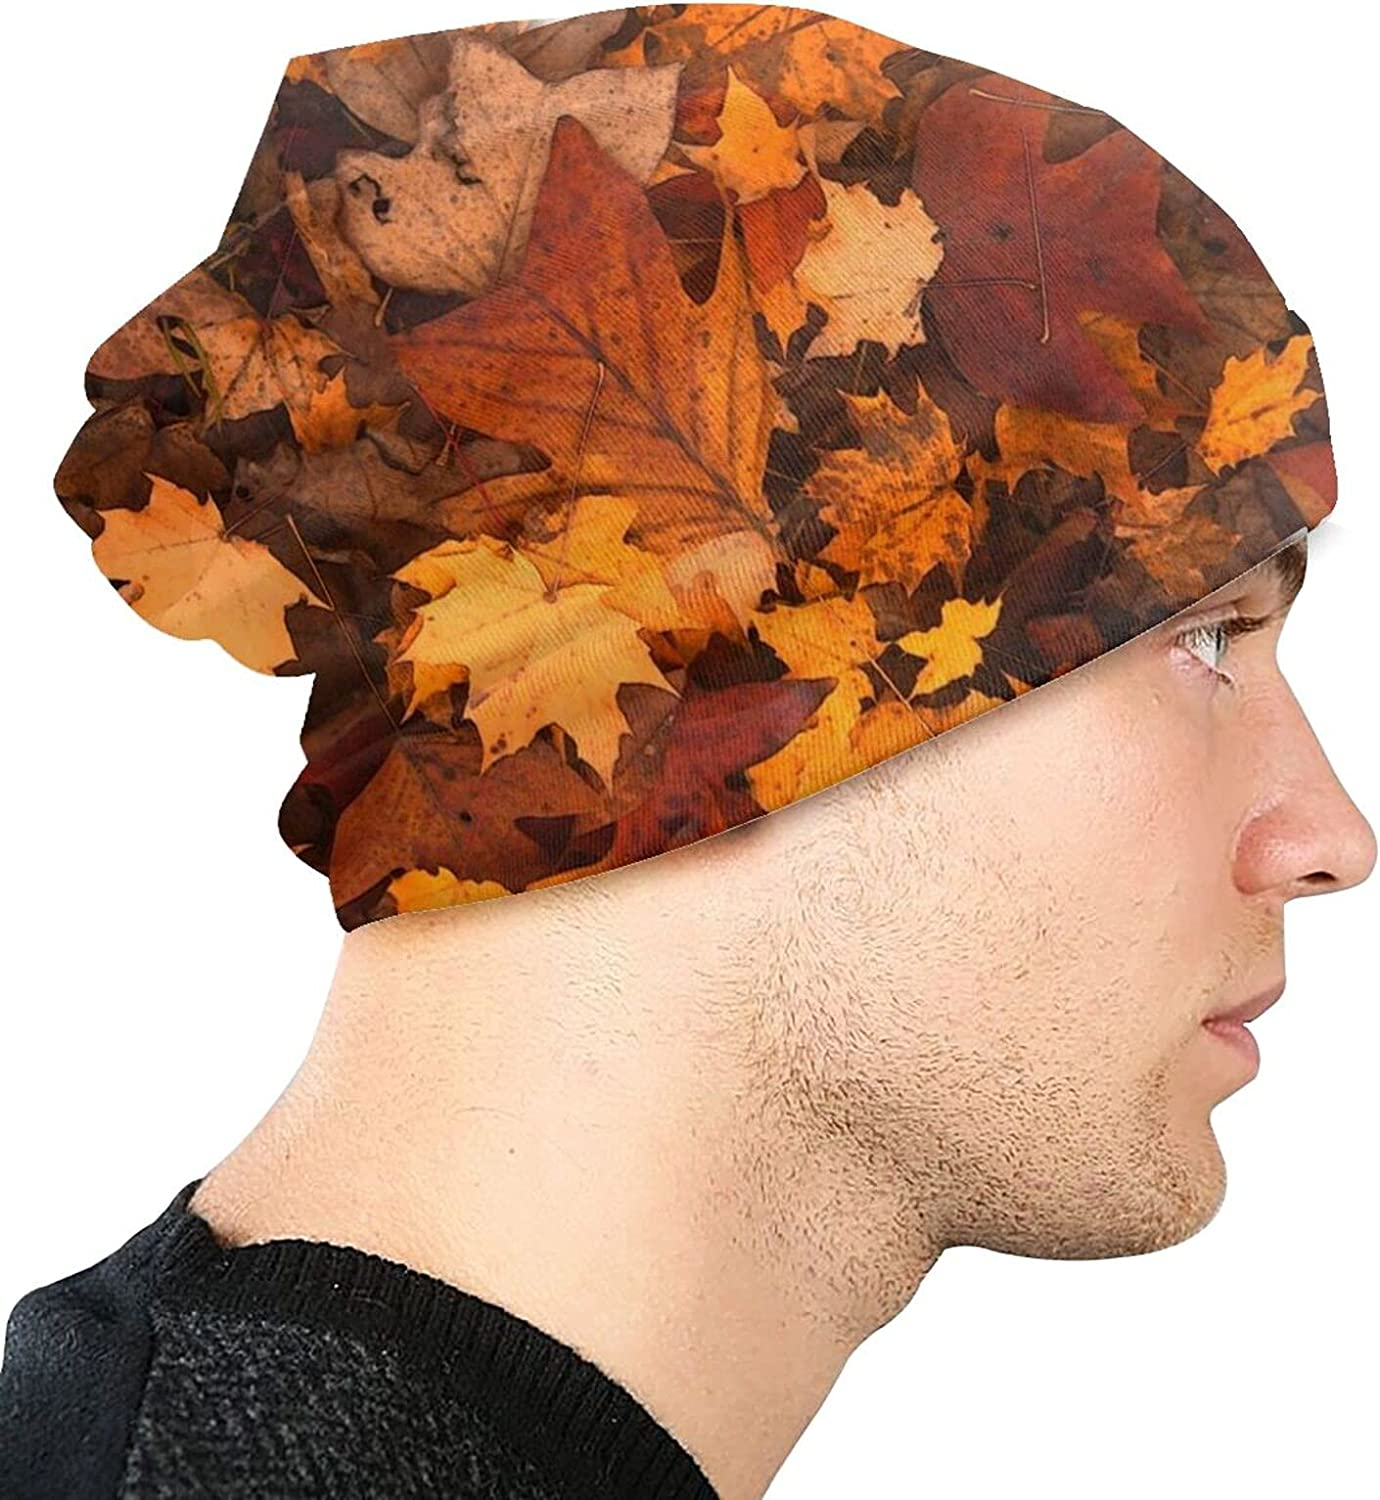 Beanie Hat for Men and Women,Autumn Fall Leaves Lightweight Balaclava Cap,Soft Stretch Slouchy, Suit for Outdoor All Seasons